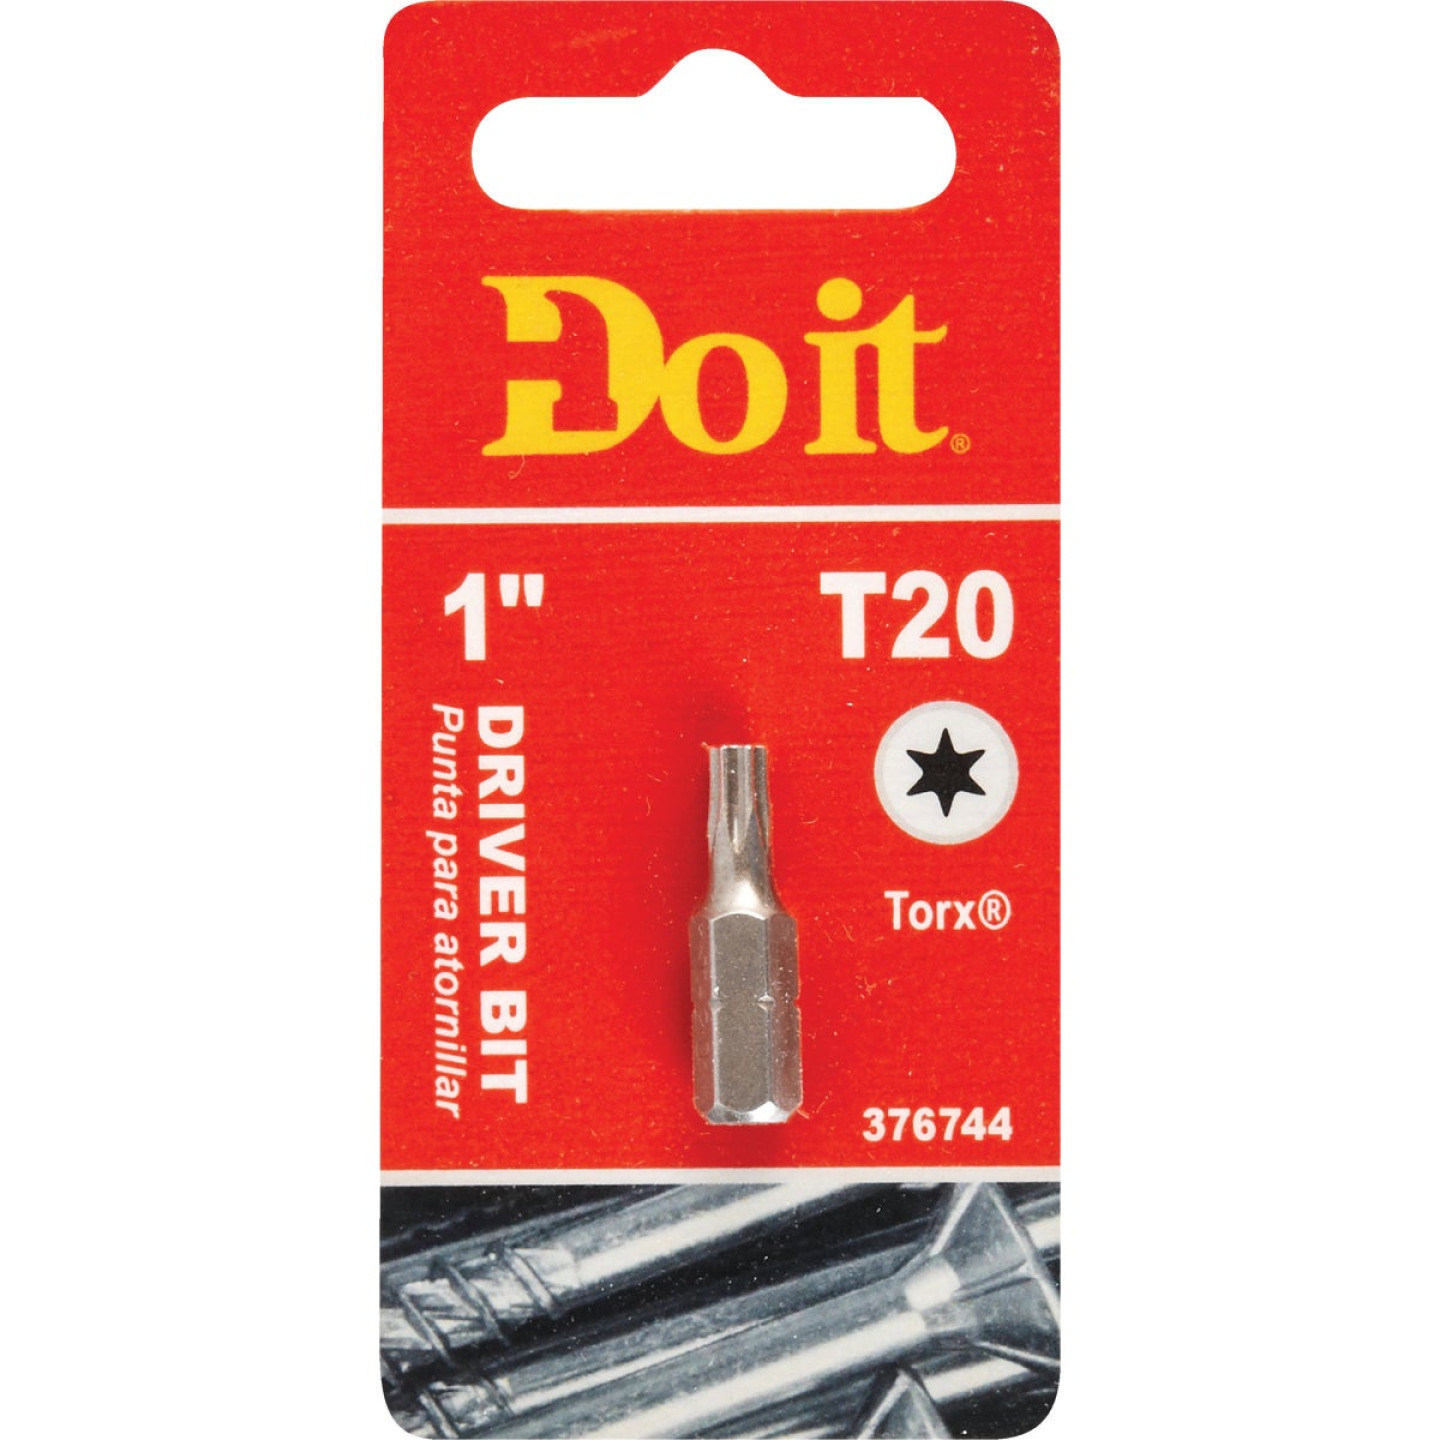 Do it T-20 TORX 1 In. Insert Screwdriver Bit Image 1